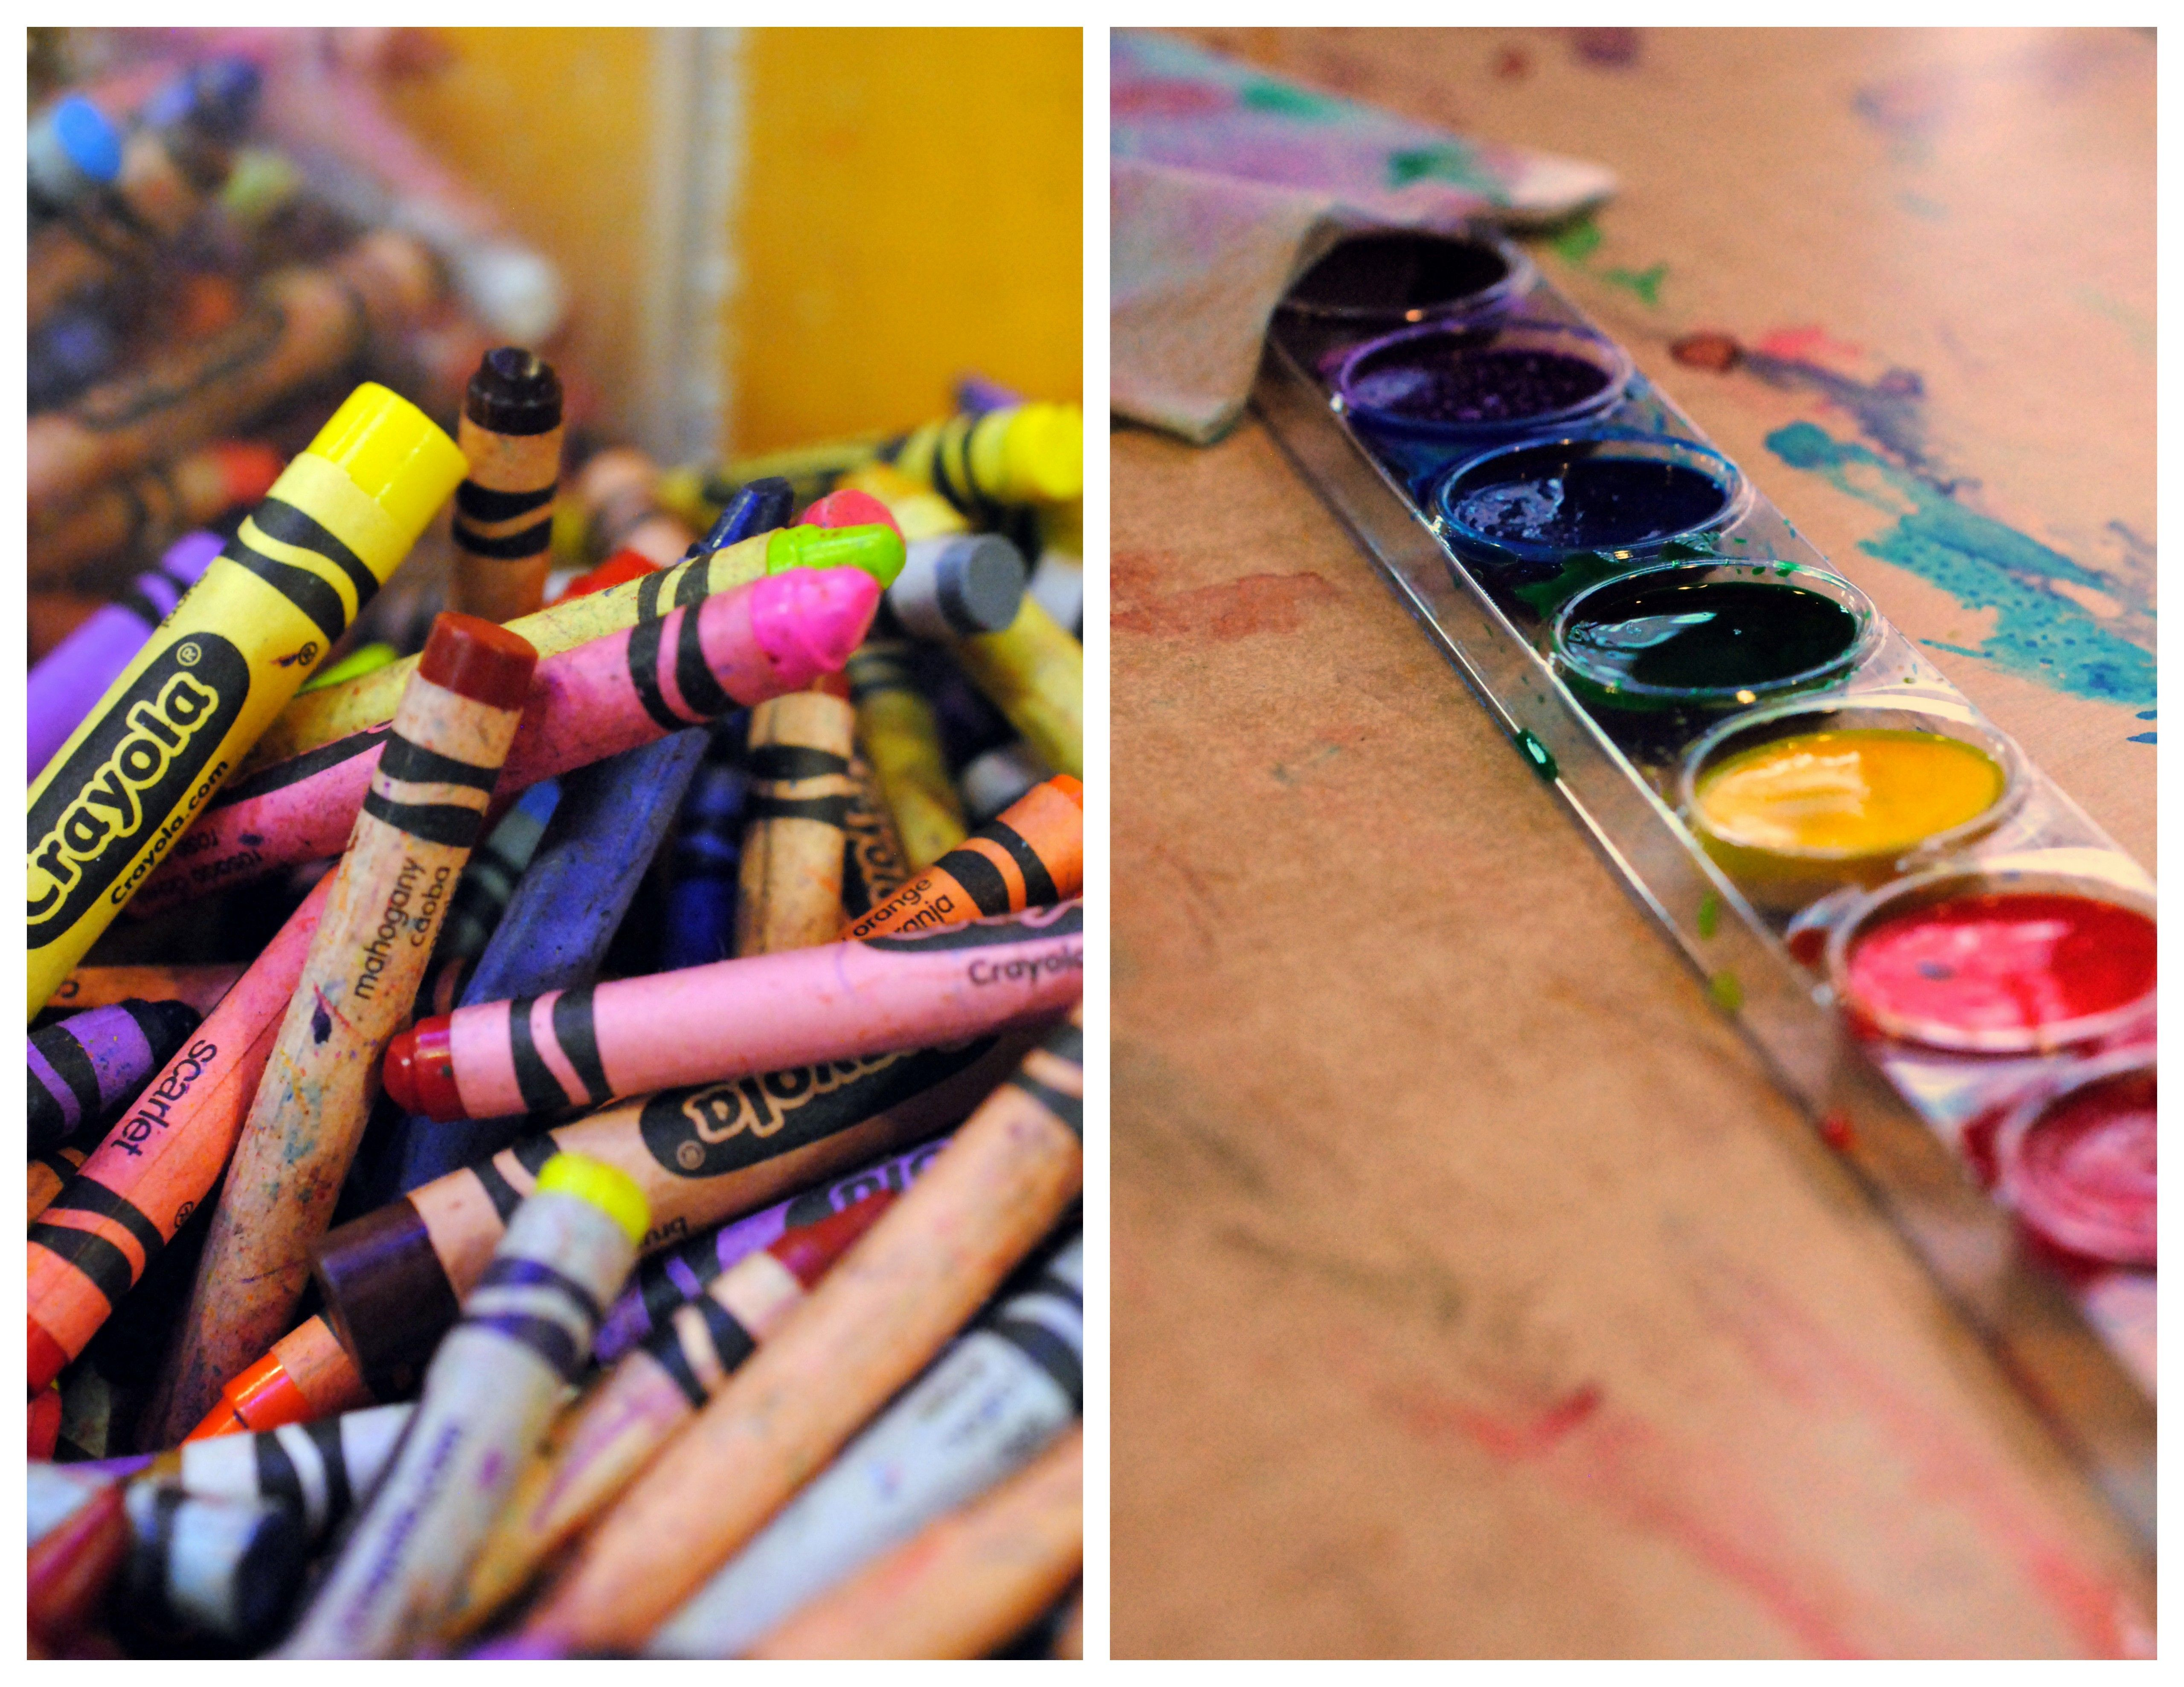 Paint and Crayons at the Crayola Experience | Art stuff | Pinterest ...